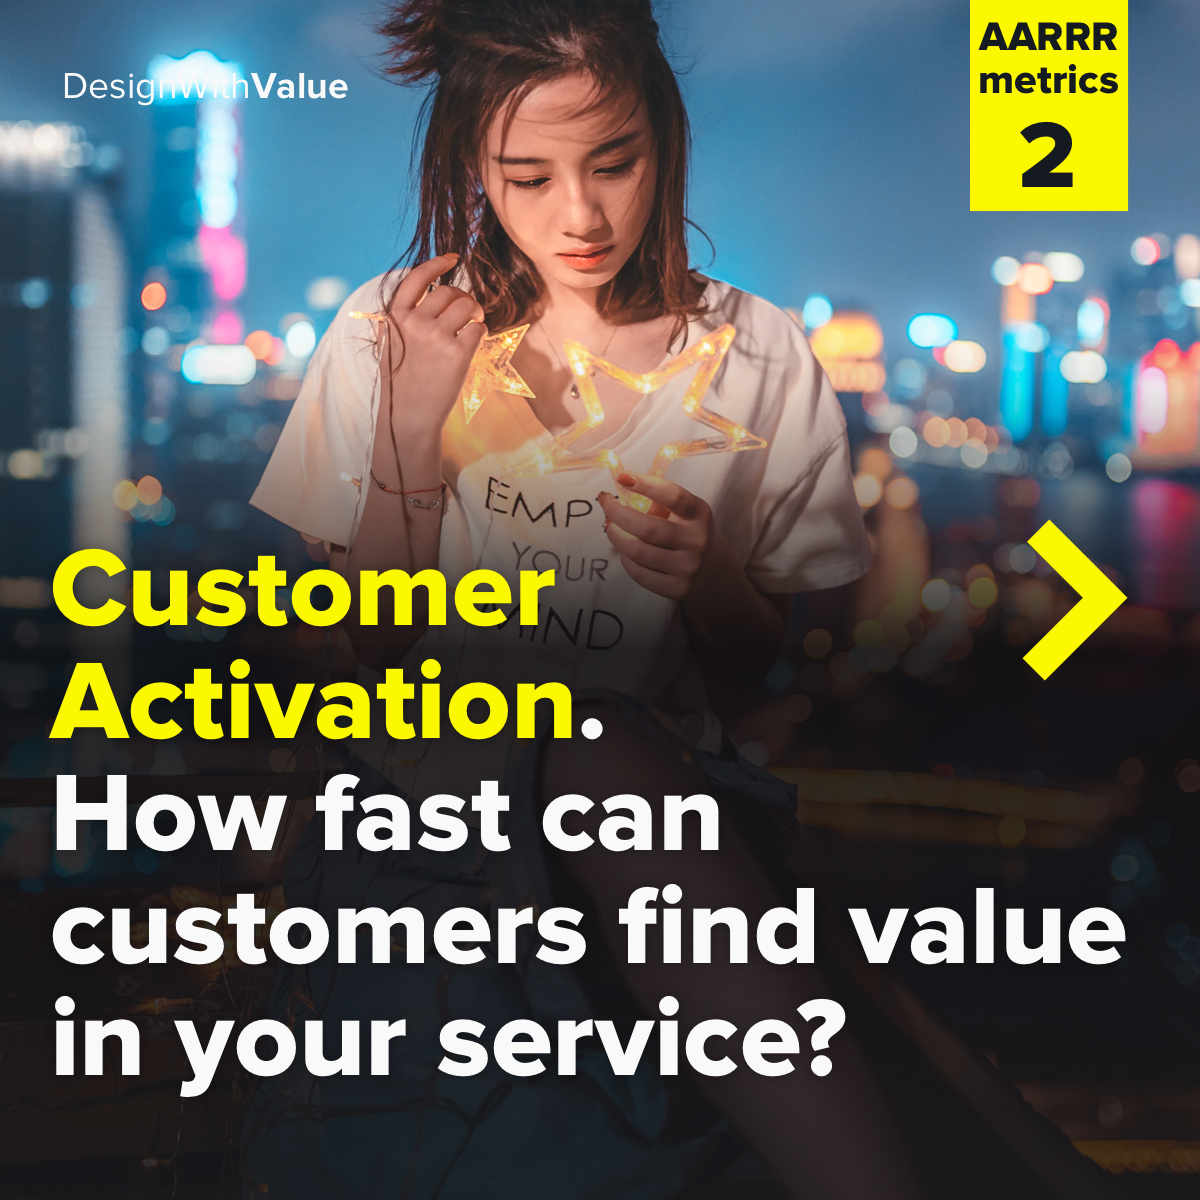 Customer activation. How fast can customers find value in your service?